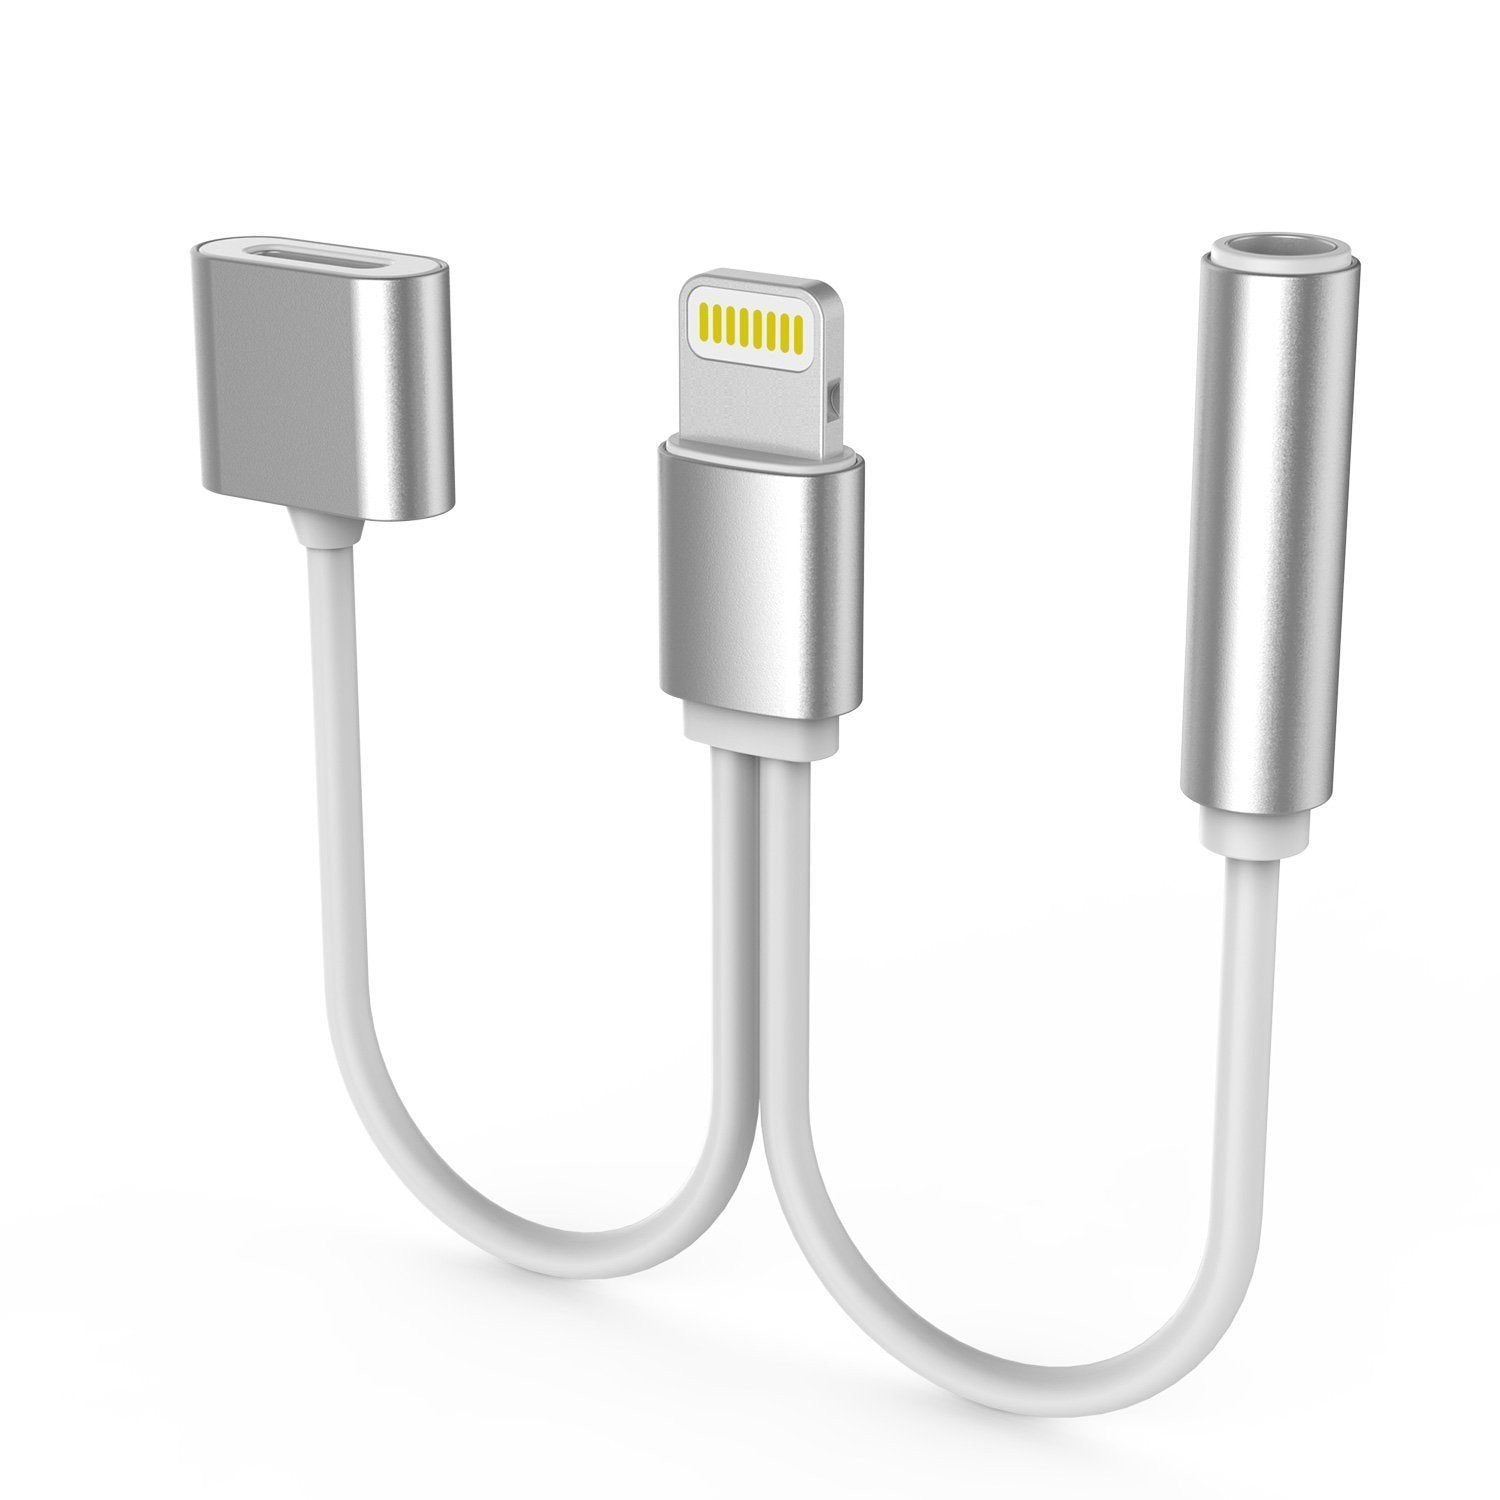 PUNKZAP Lightning Adapter Cable 2 in 1 Splitter Charger [SILVER]